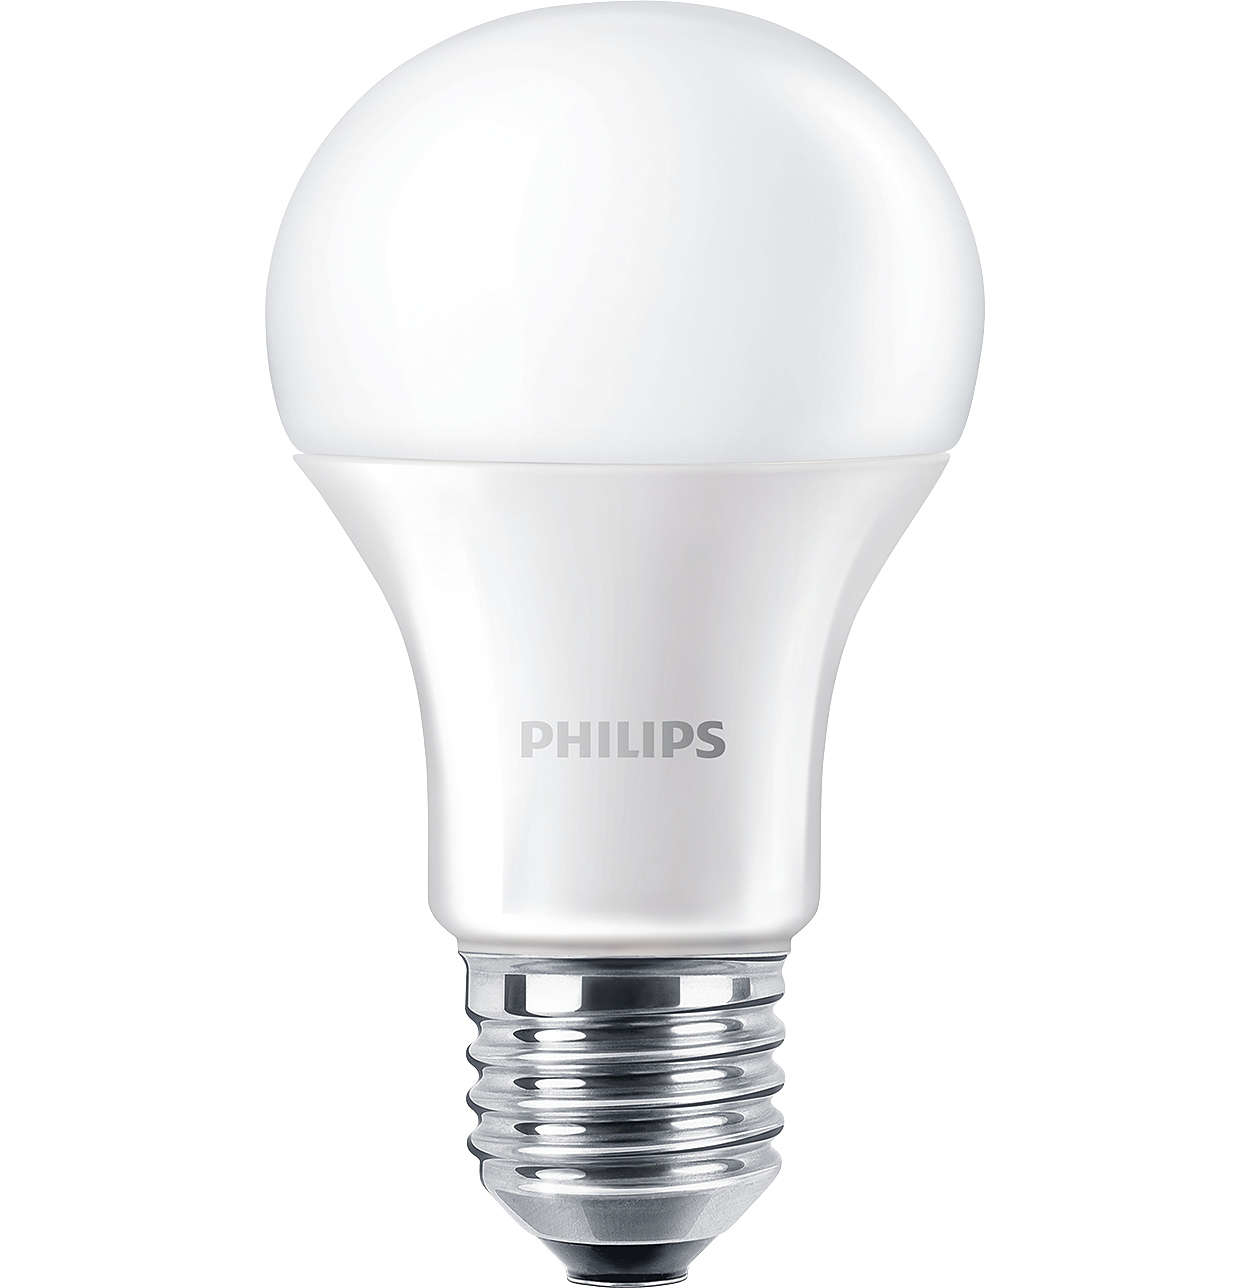 Philips Lampadina a LED - Lampadina LED - Core40840